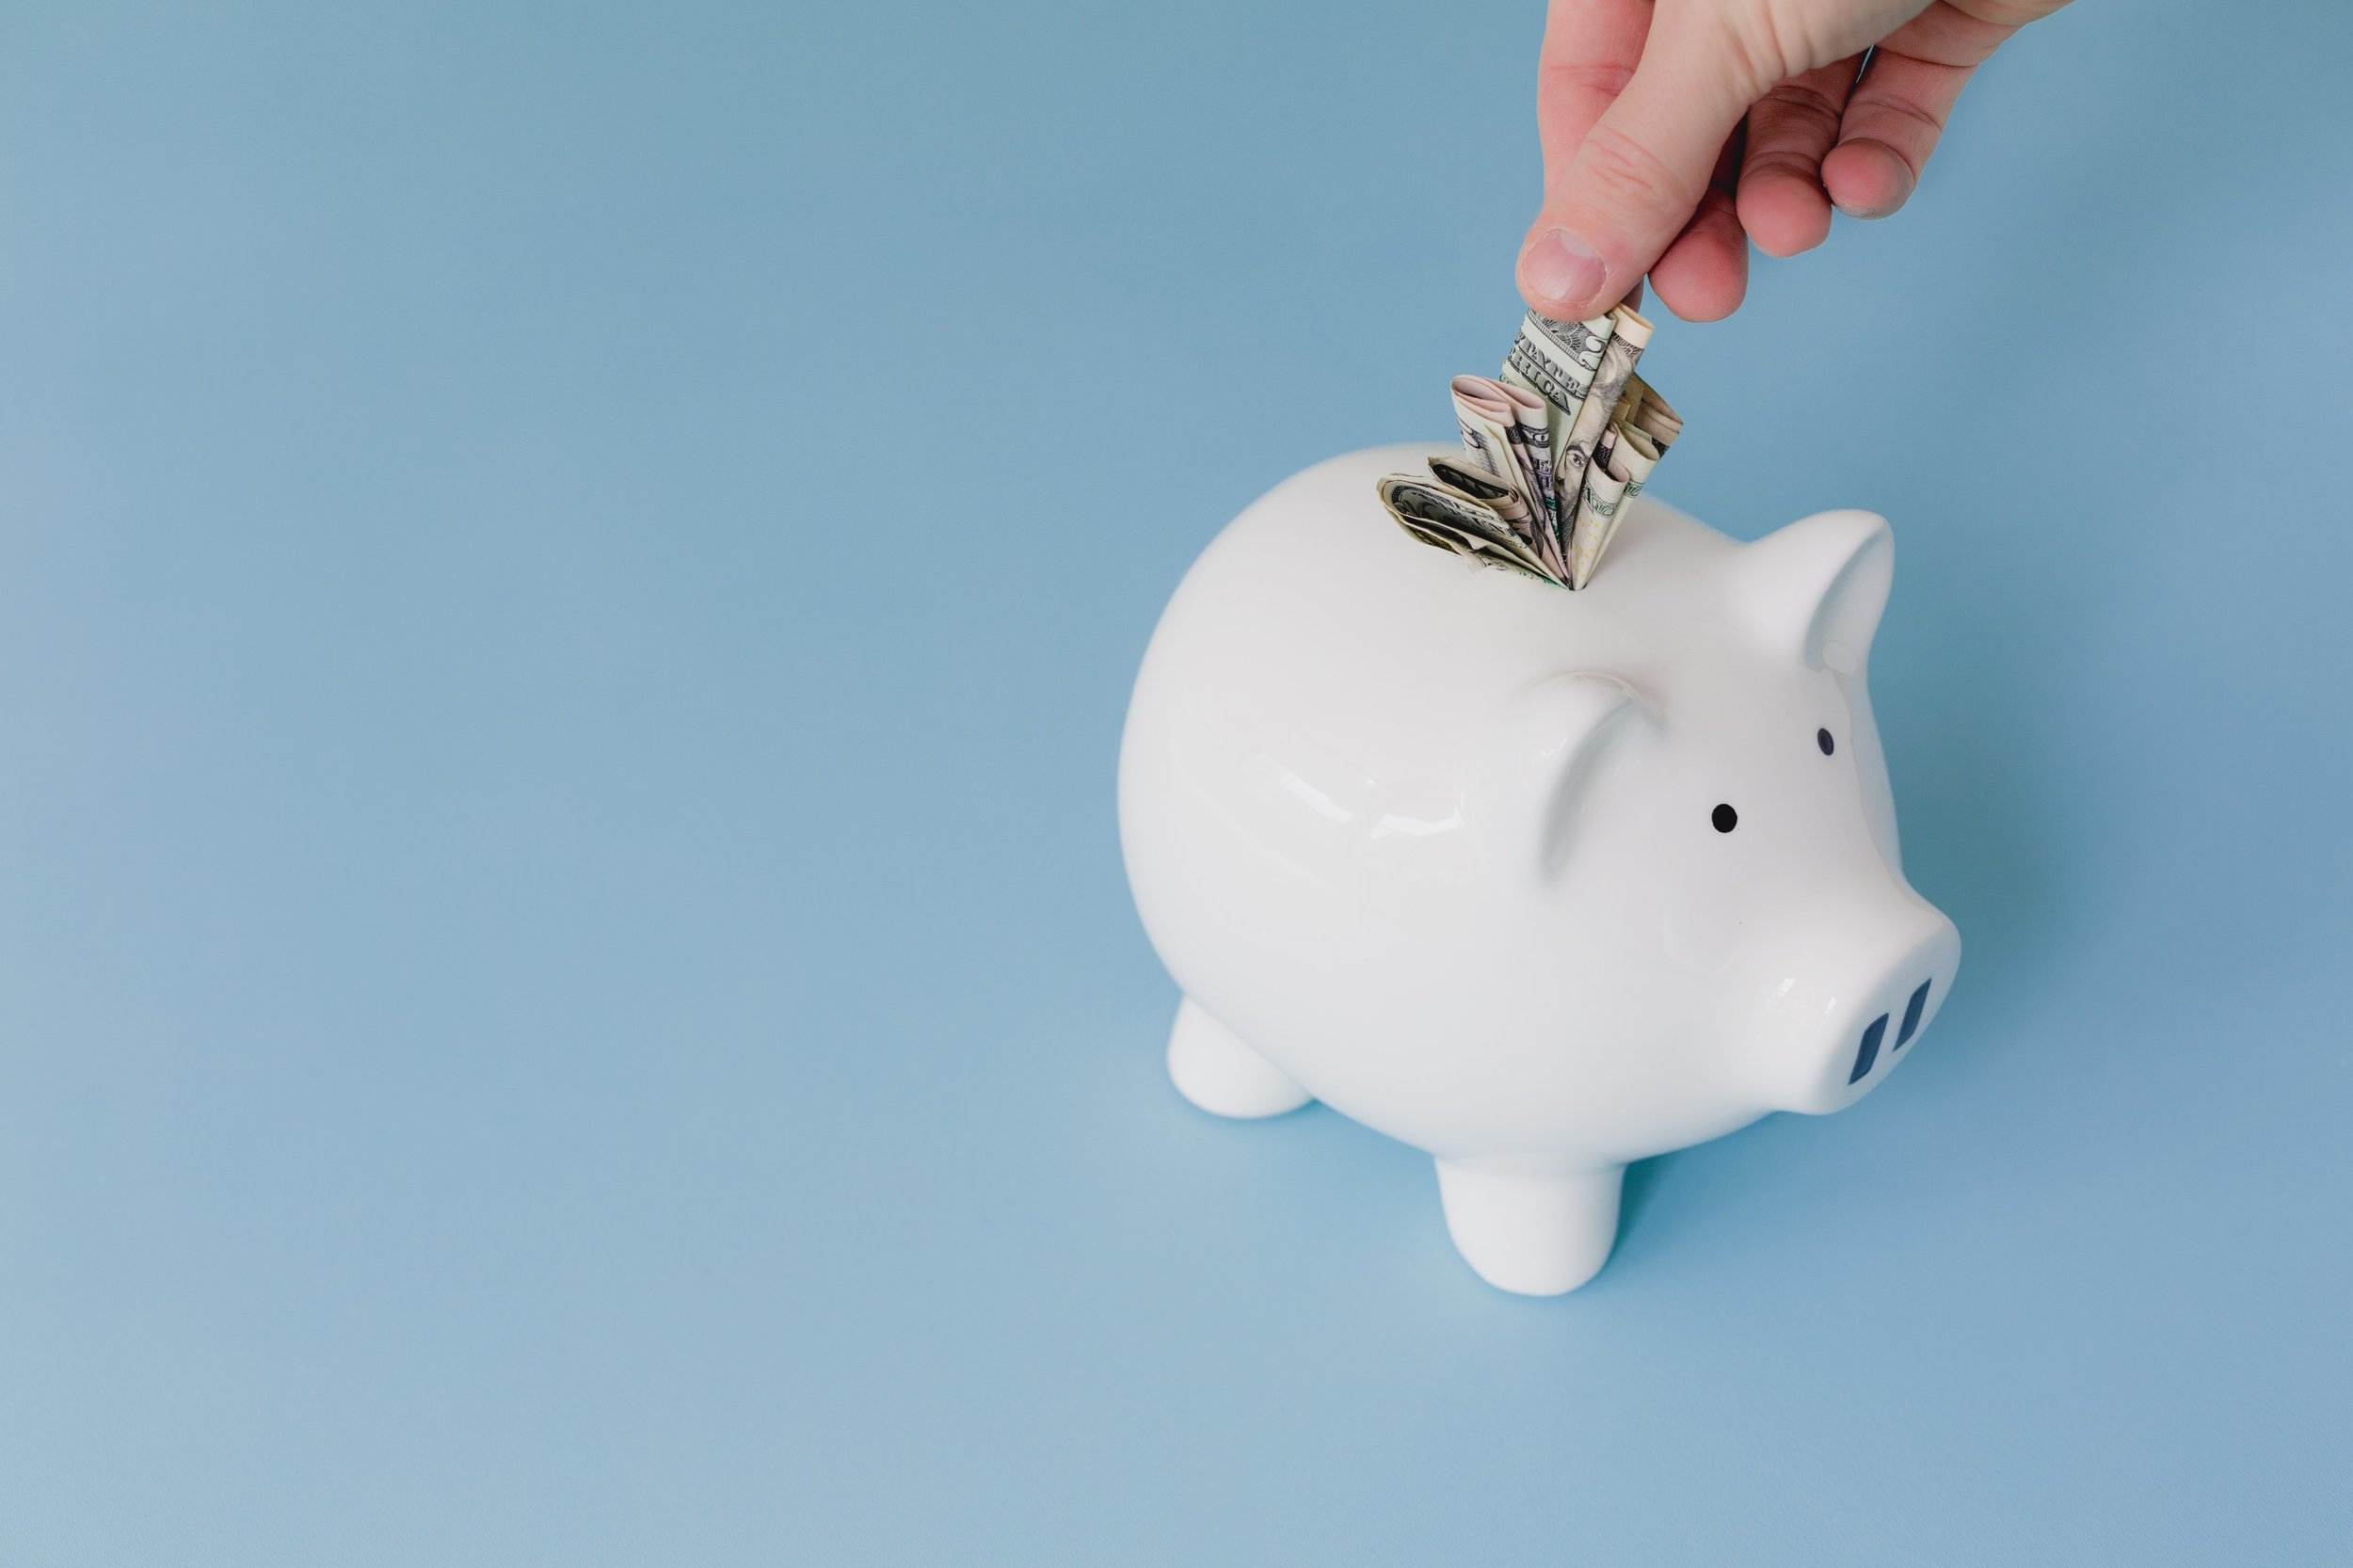 saving-money-piggy-bank_4460x4460.jpg